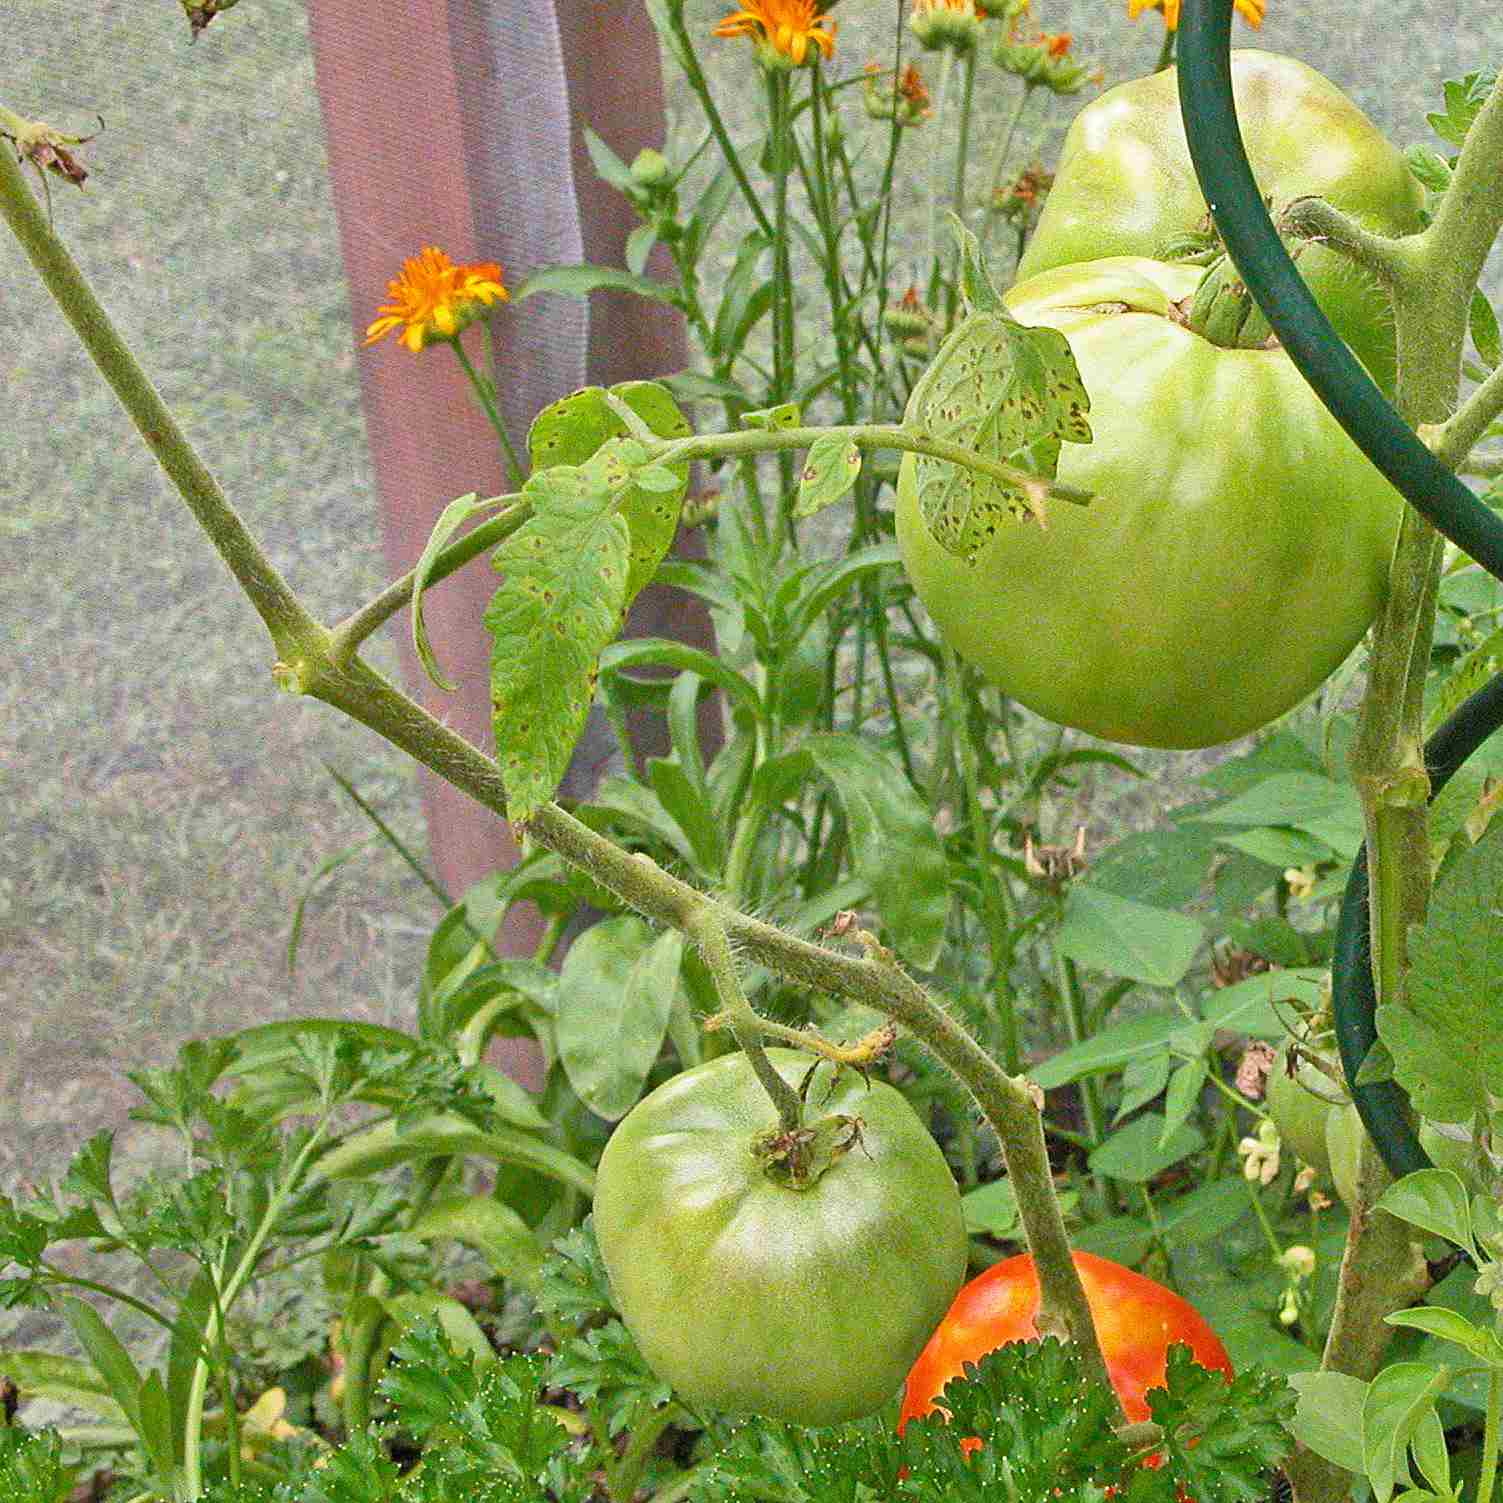 This tomato was underplanted with parsley, which is enjoying a little relief from the sun